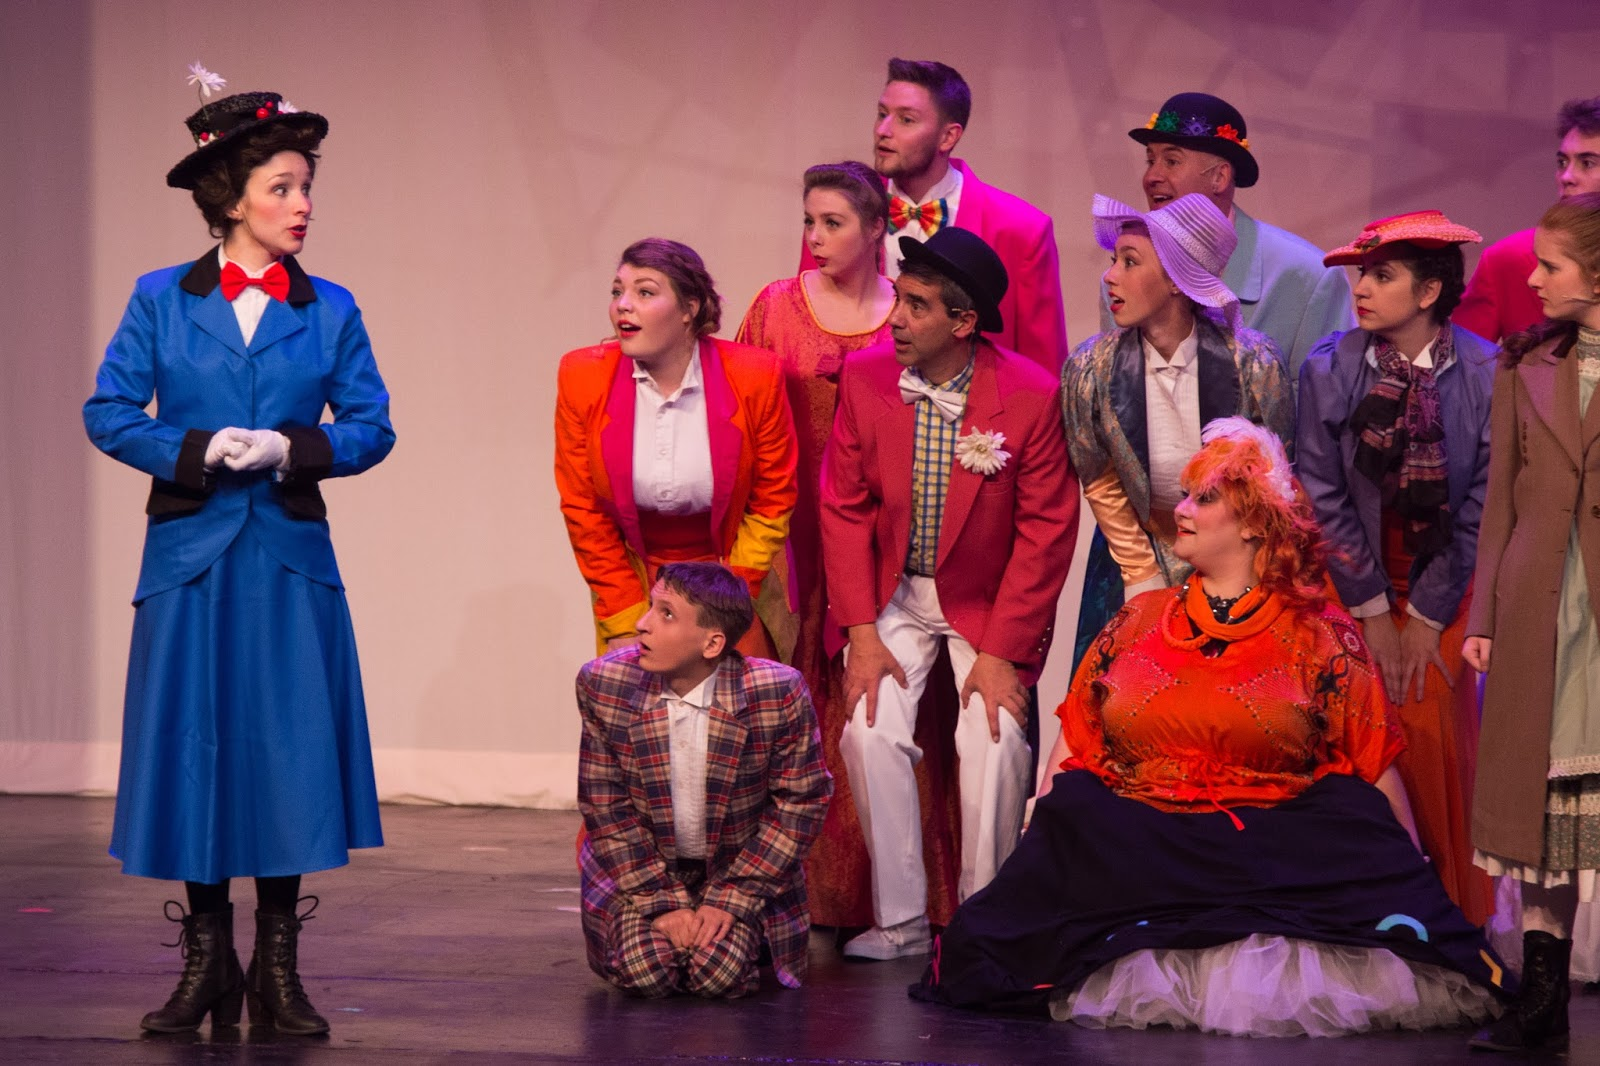 http://mwcc.edu/news/files/2017/01/Mary-Poppins-Theatre-at-the-Mount.jpg